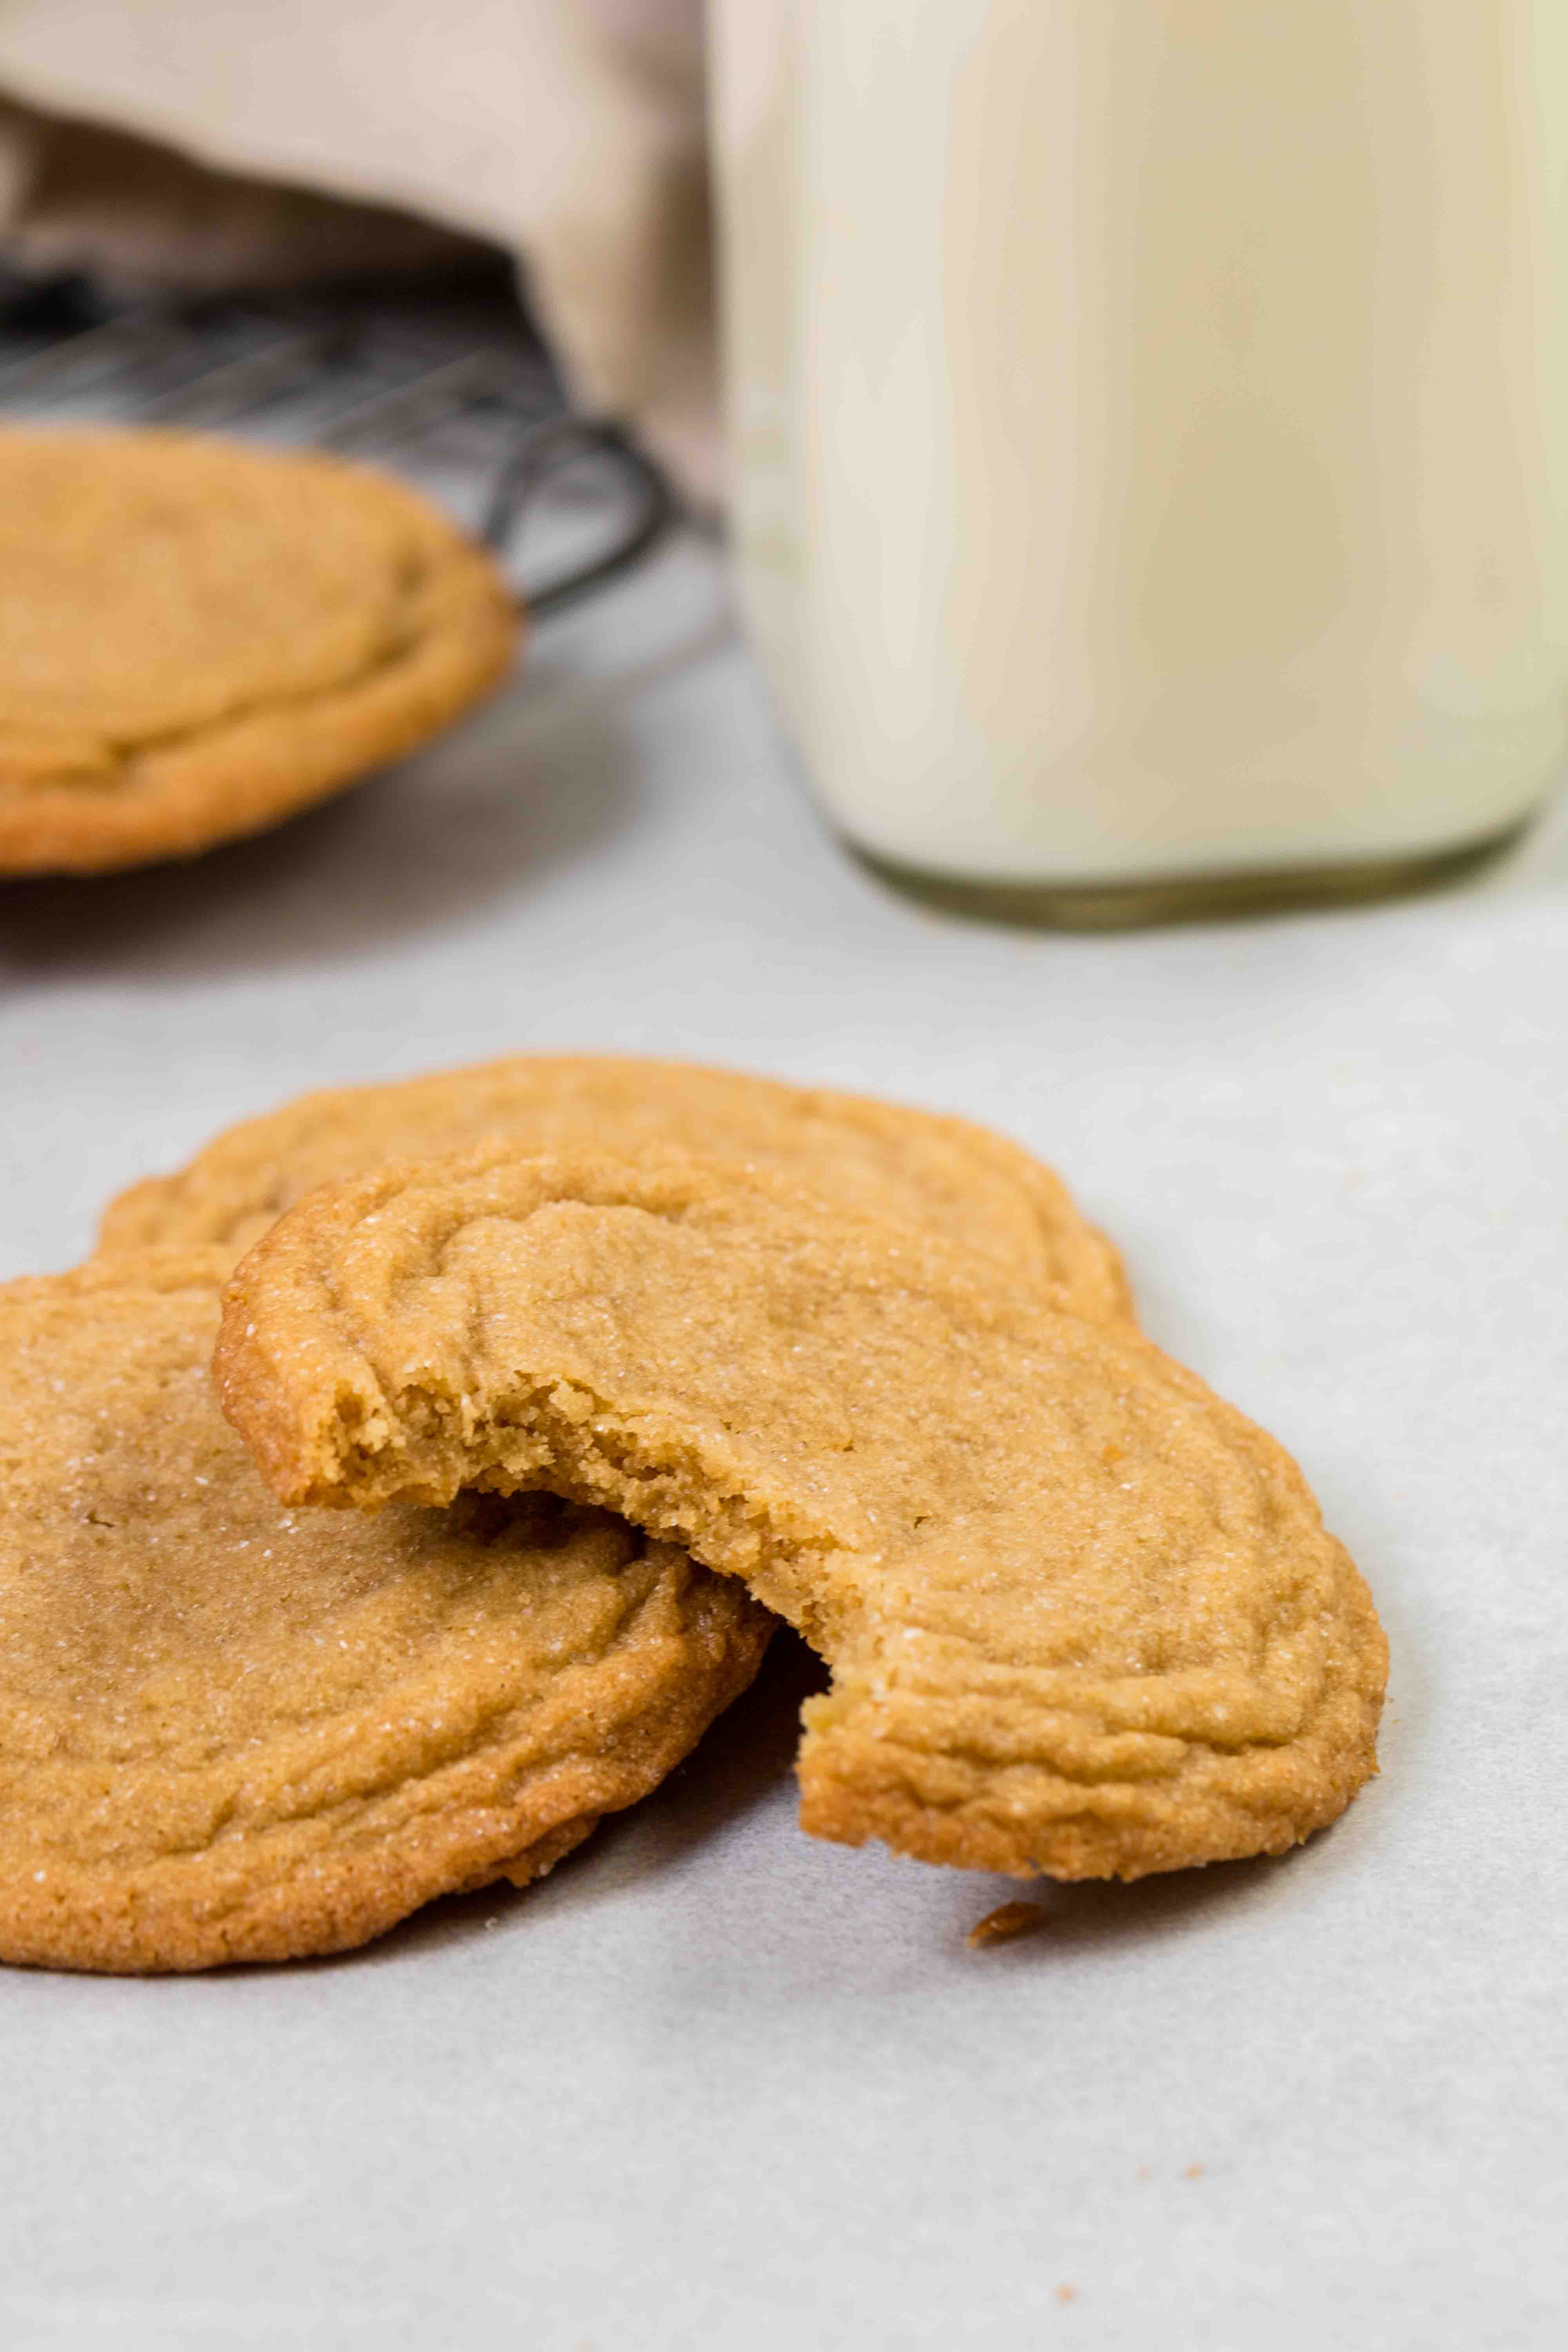 Easy and chewy brown sugar cookies with a bite